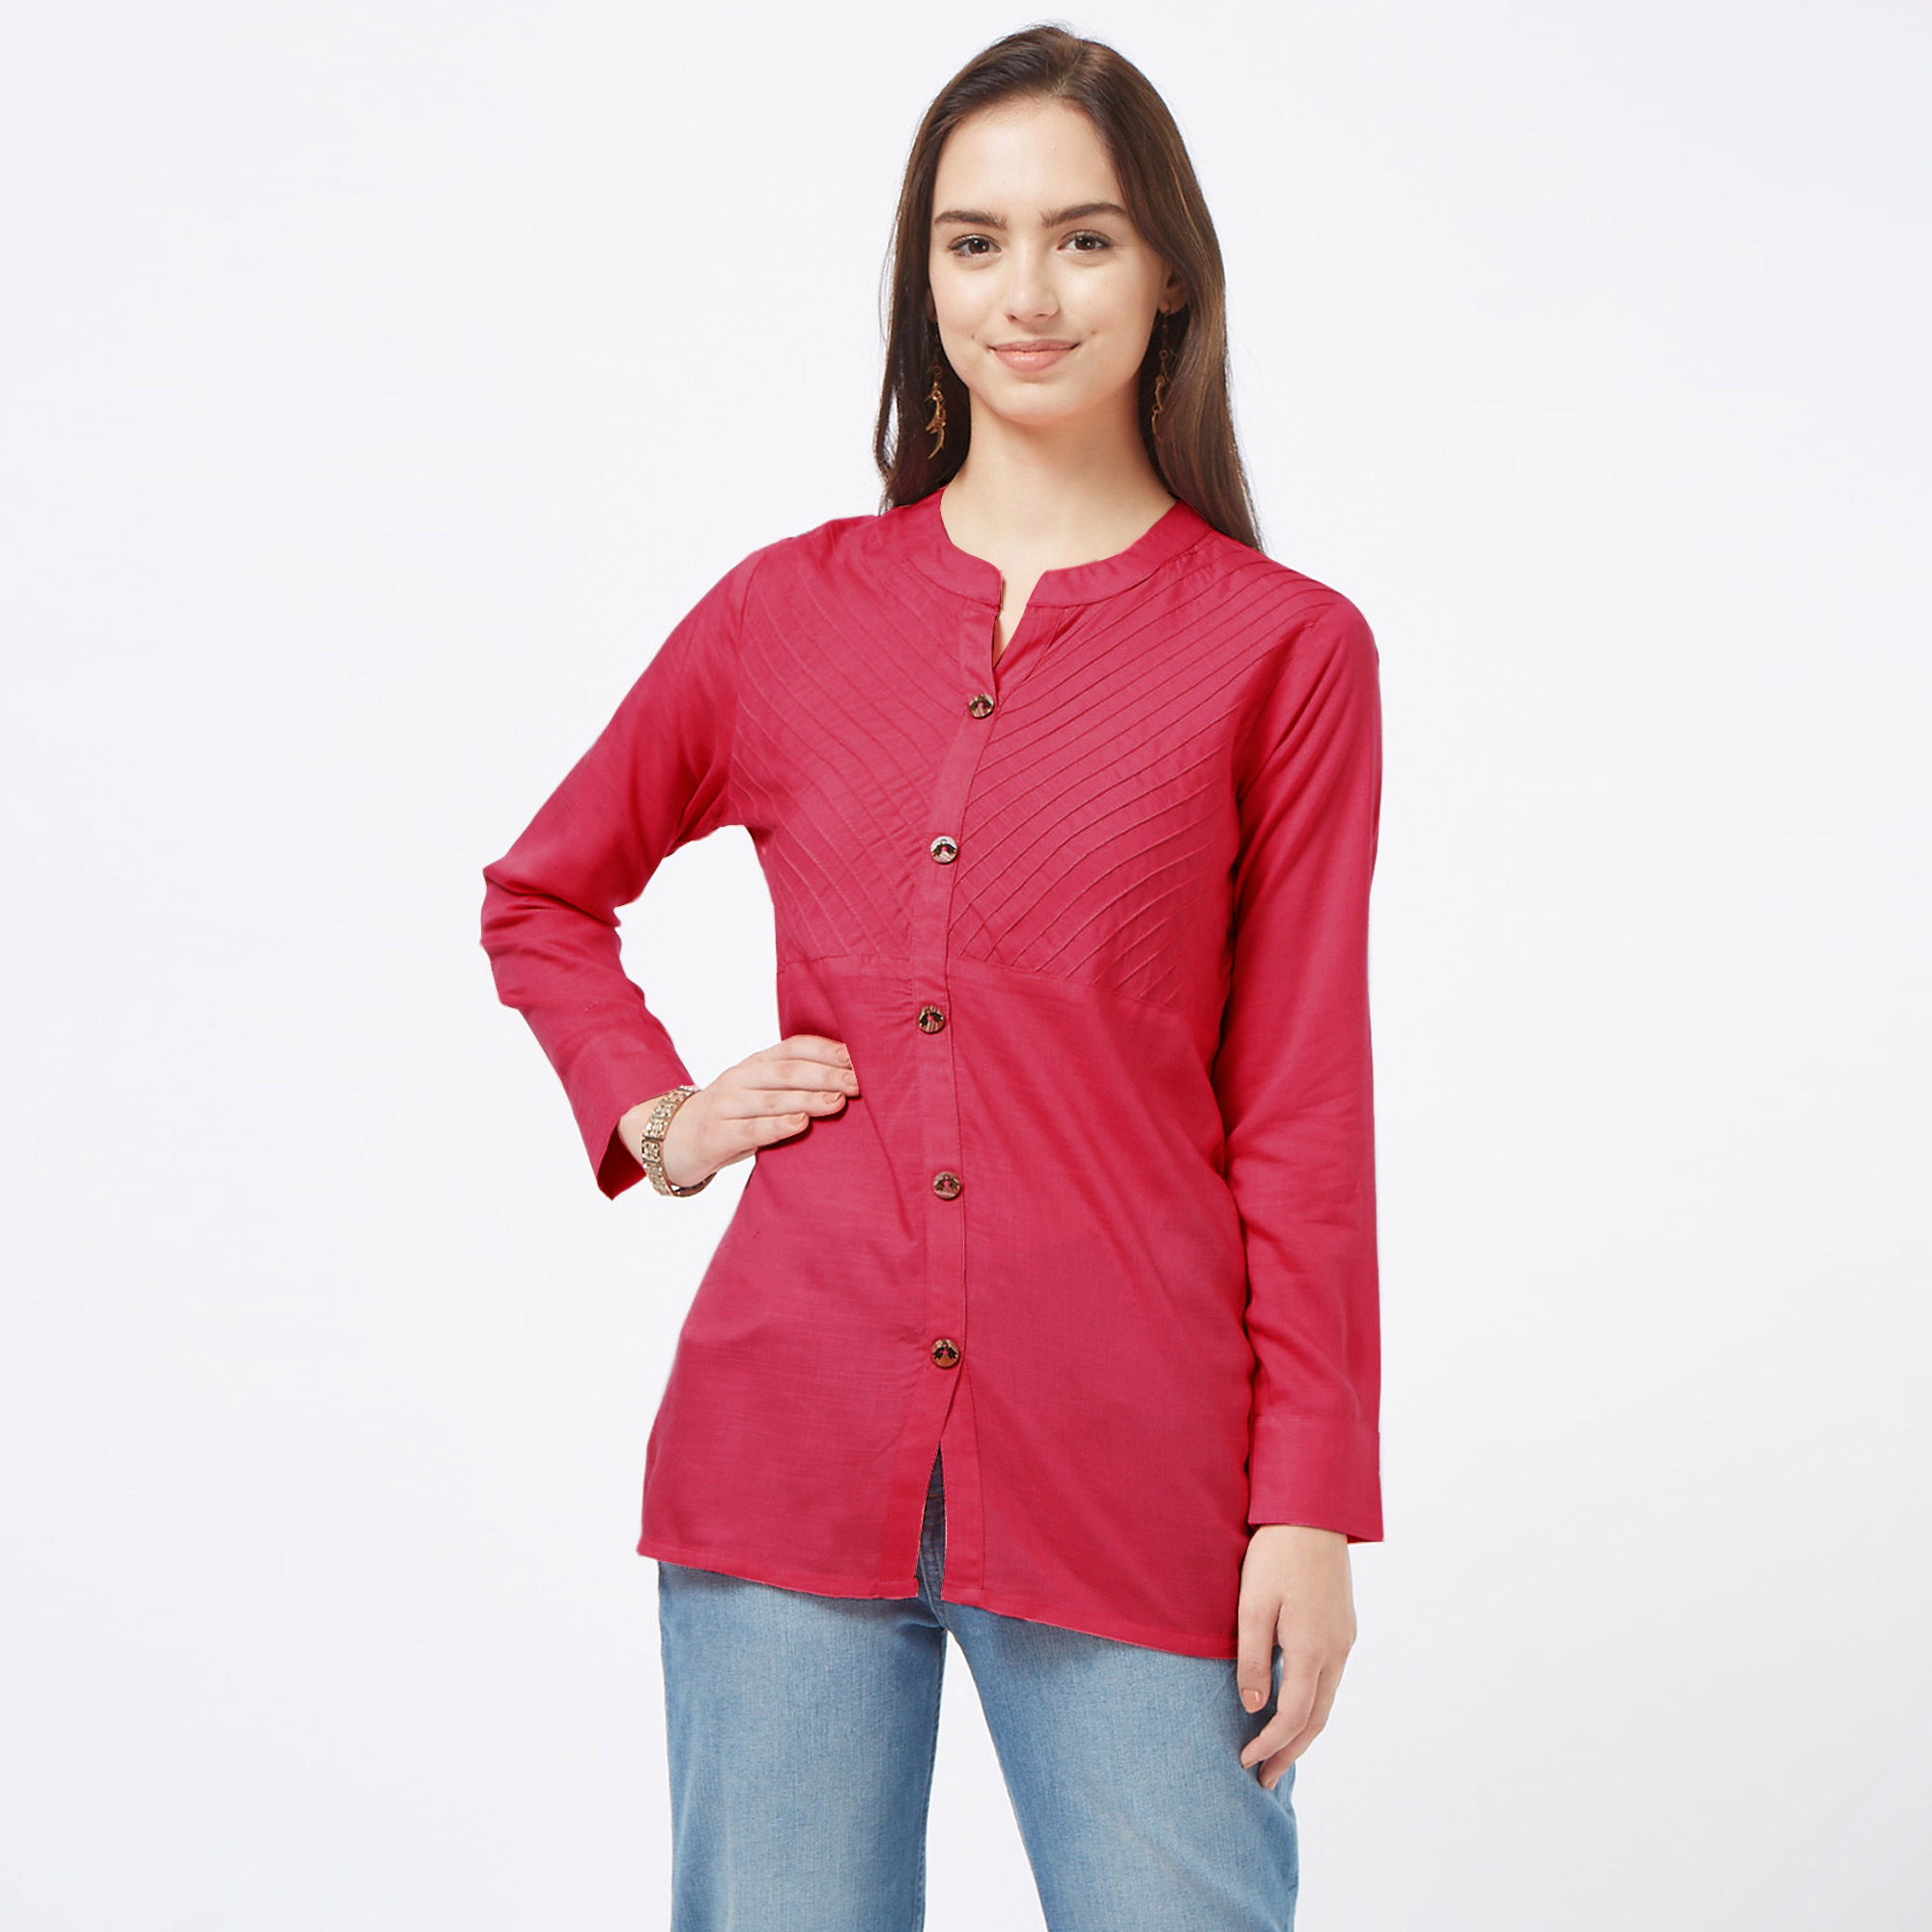 Desirable Pink Colored Casual Embroidered Cotton Top